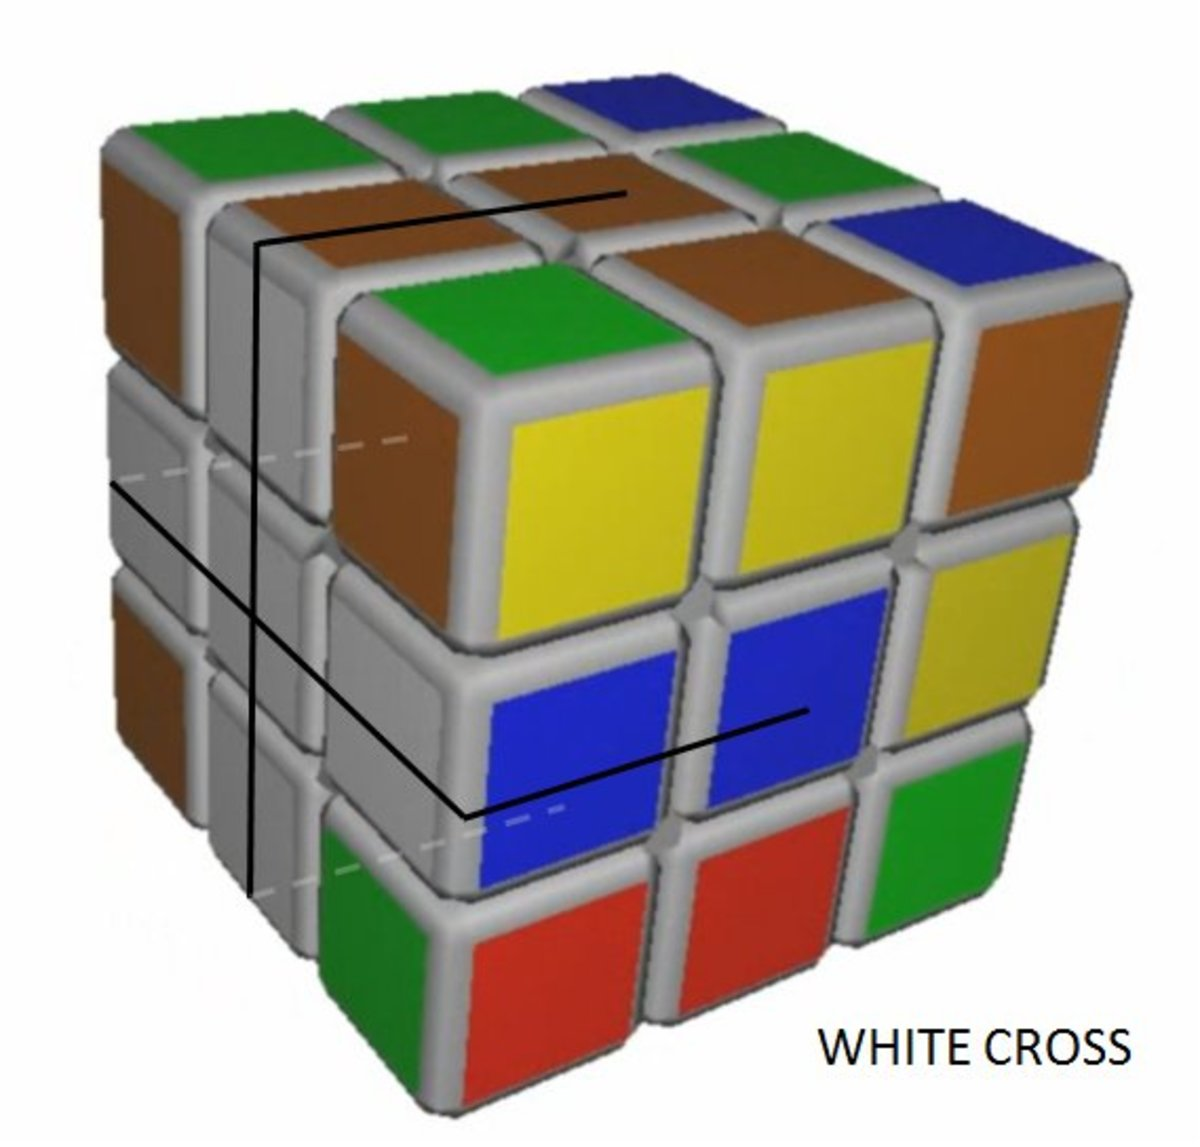 Making the white cross